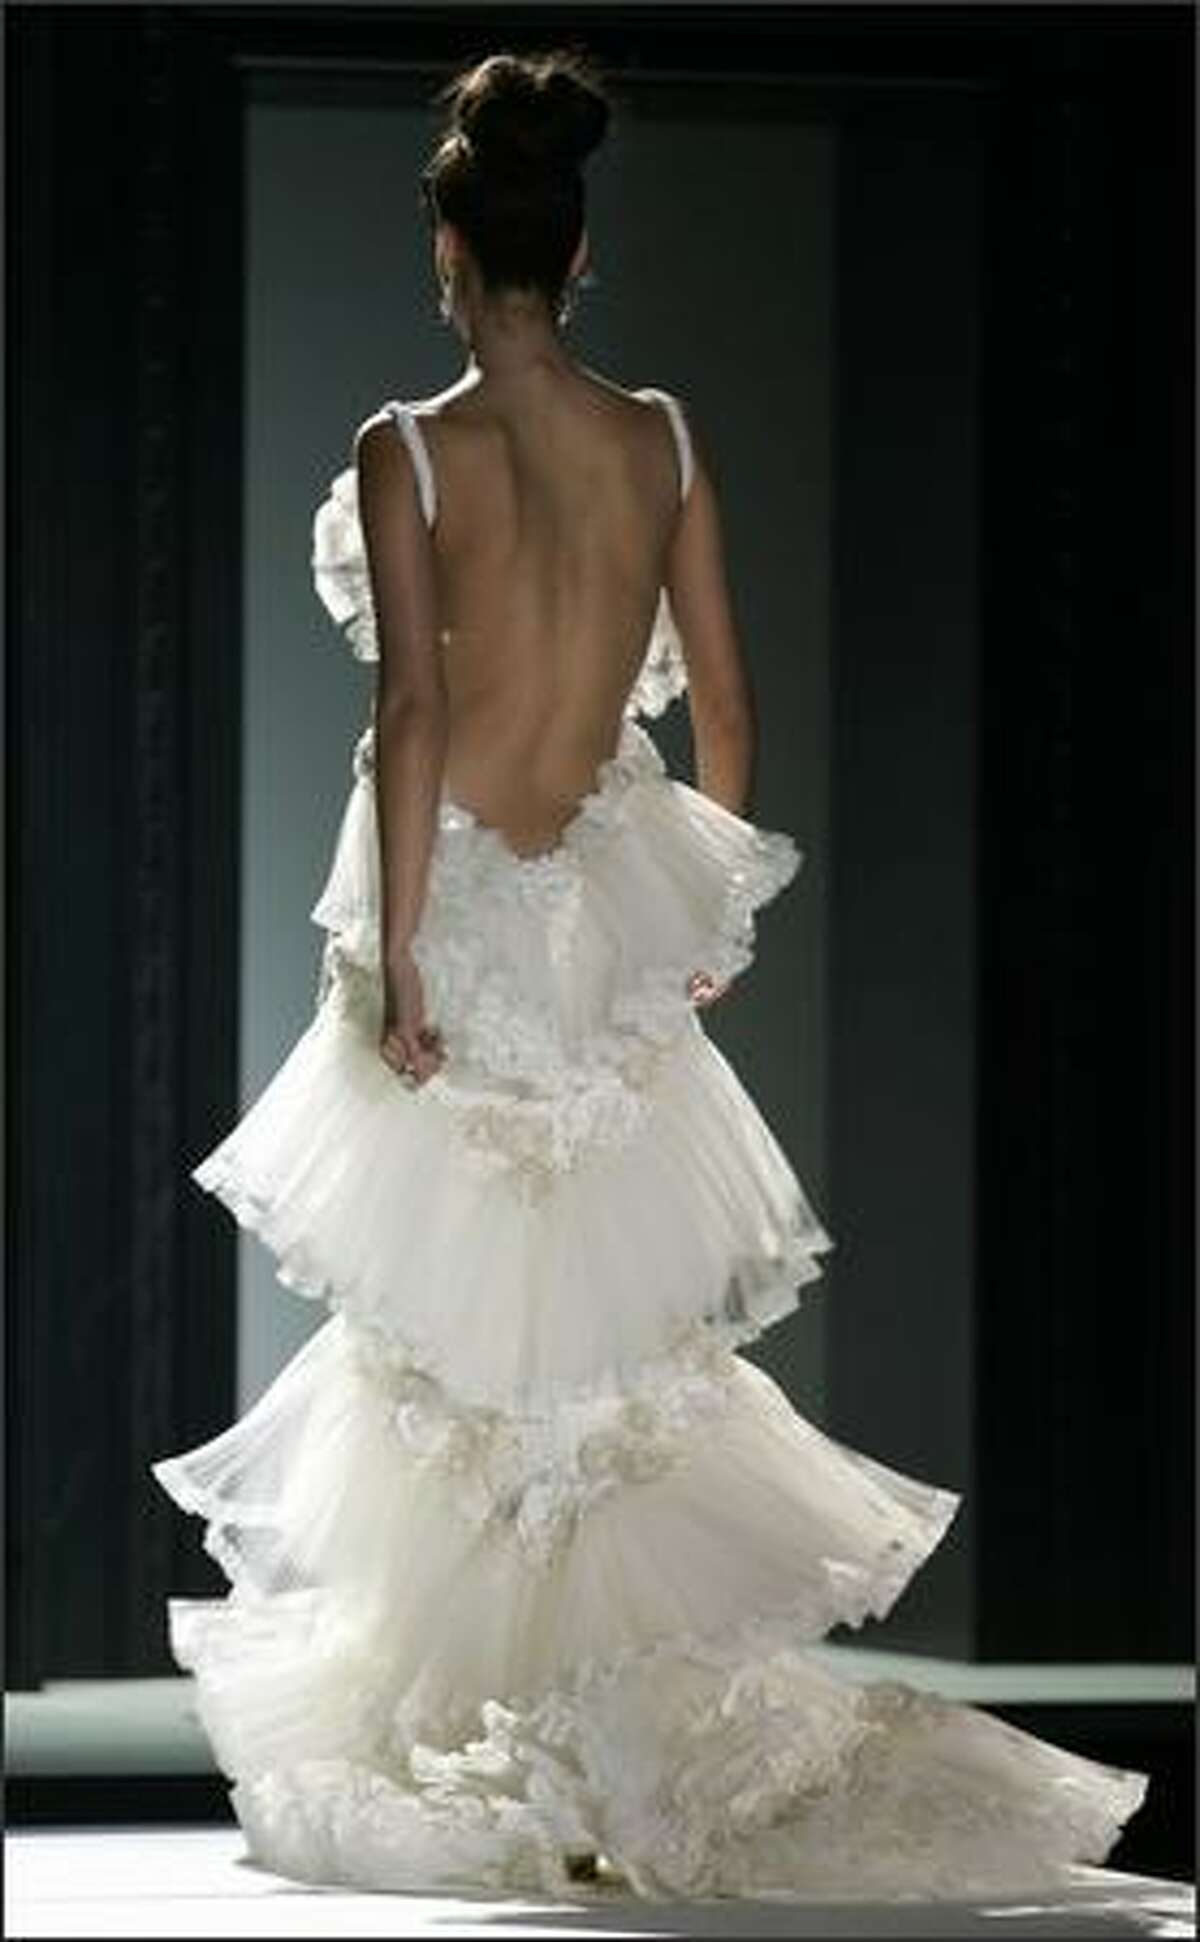 Models present wedding gowns by Spanish designer Pepe Botella during Barcelona Bridal fashion week.